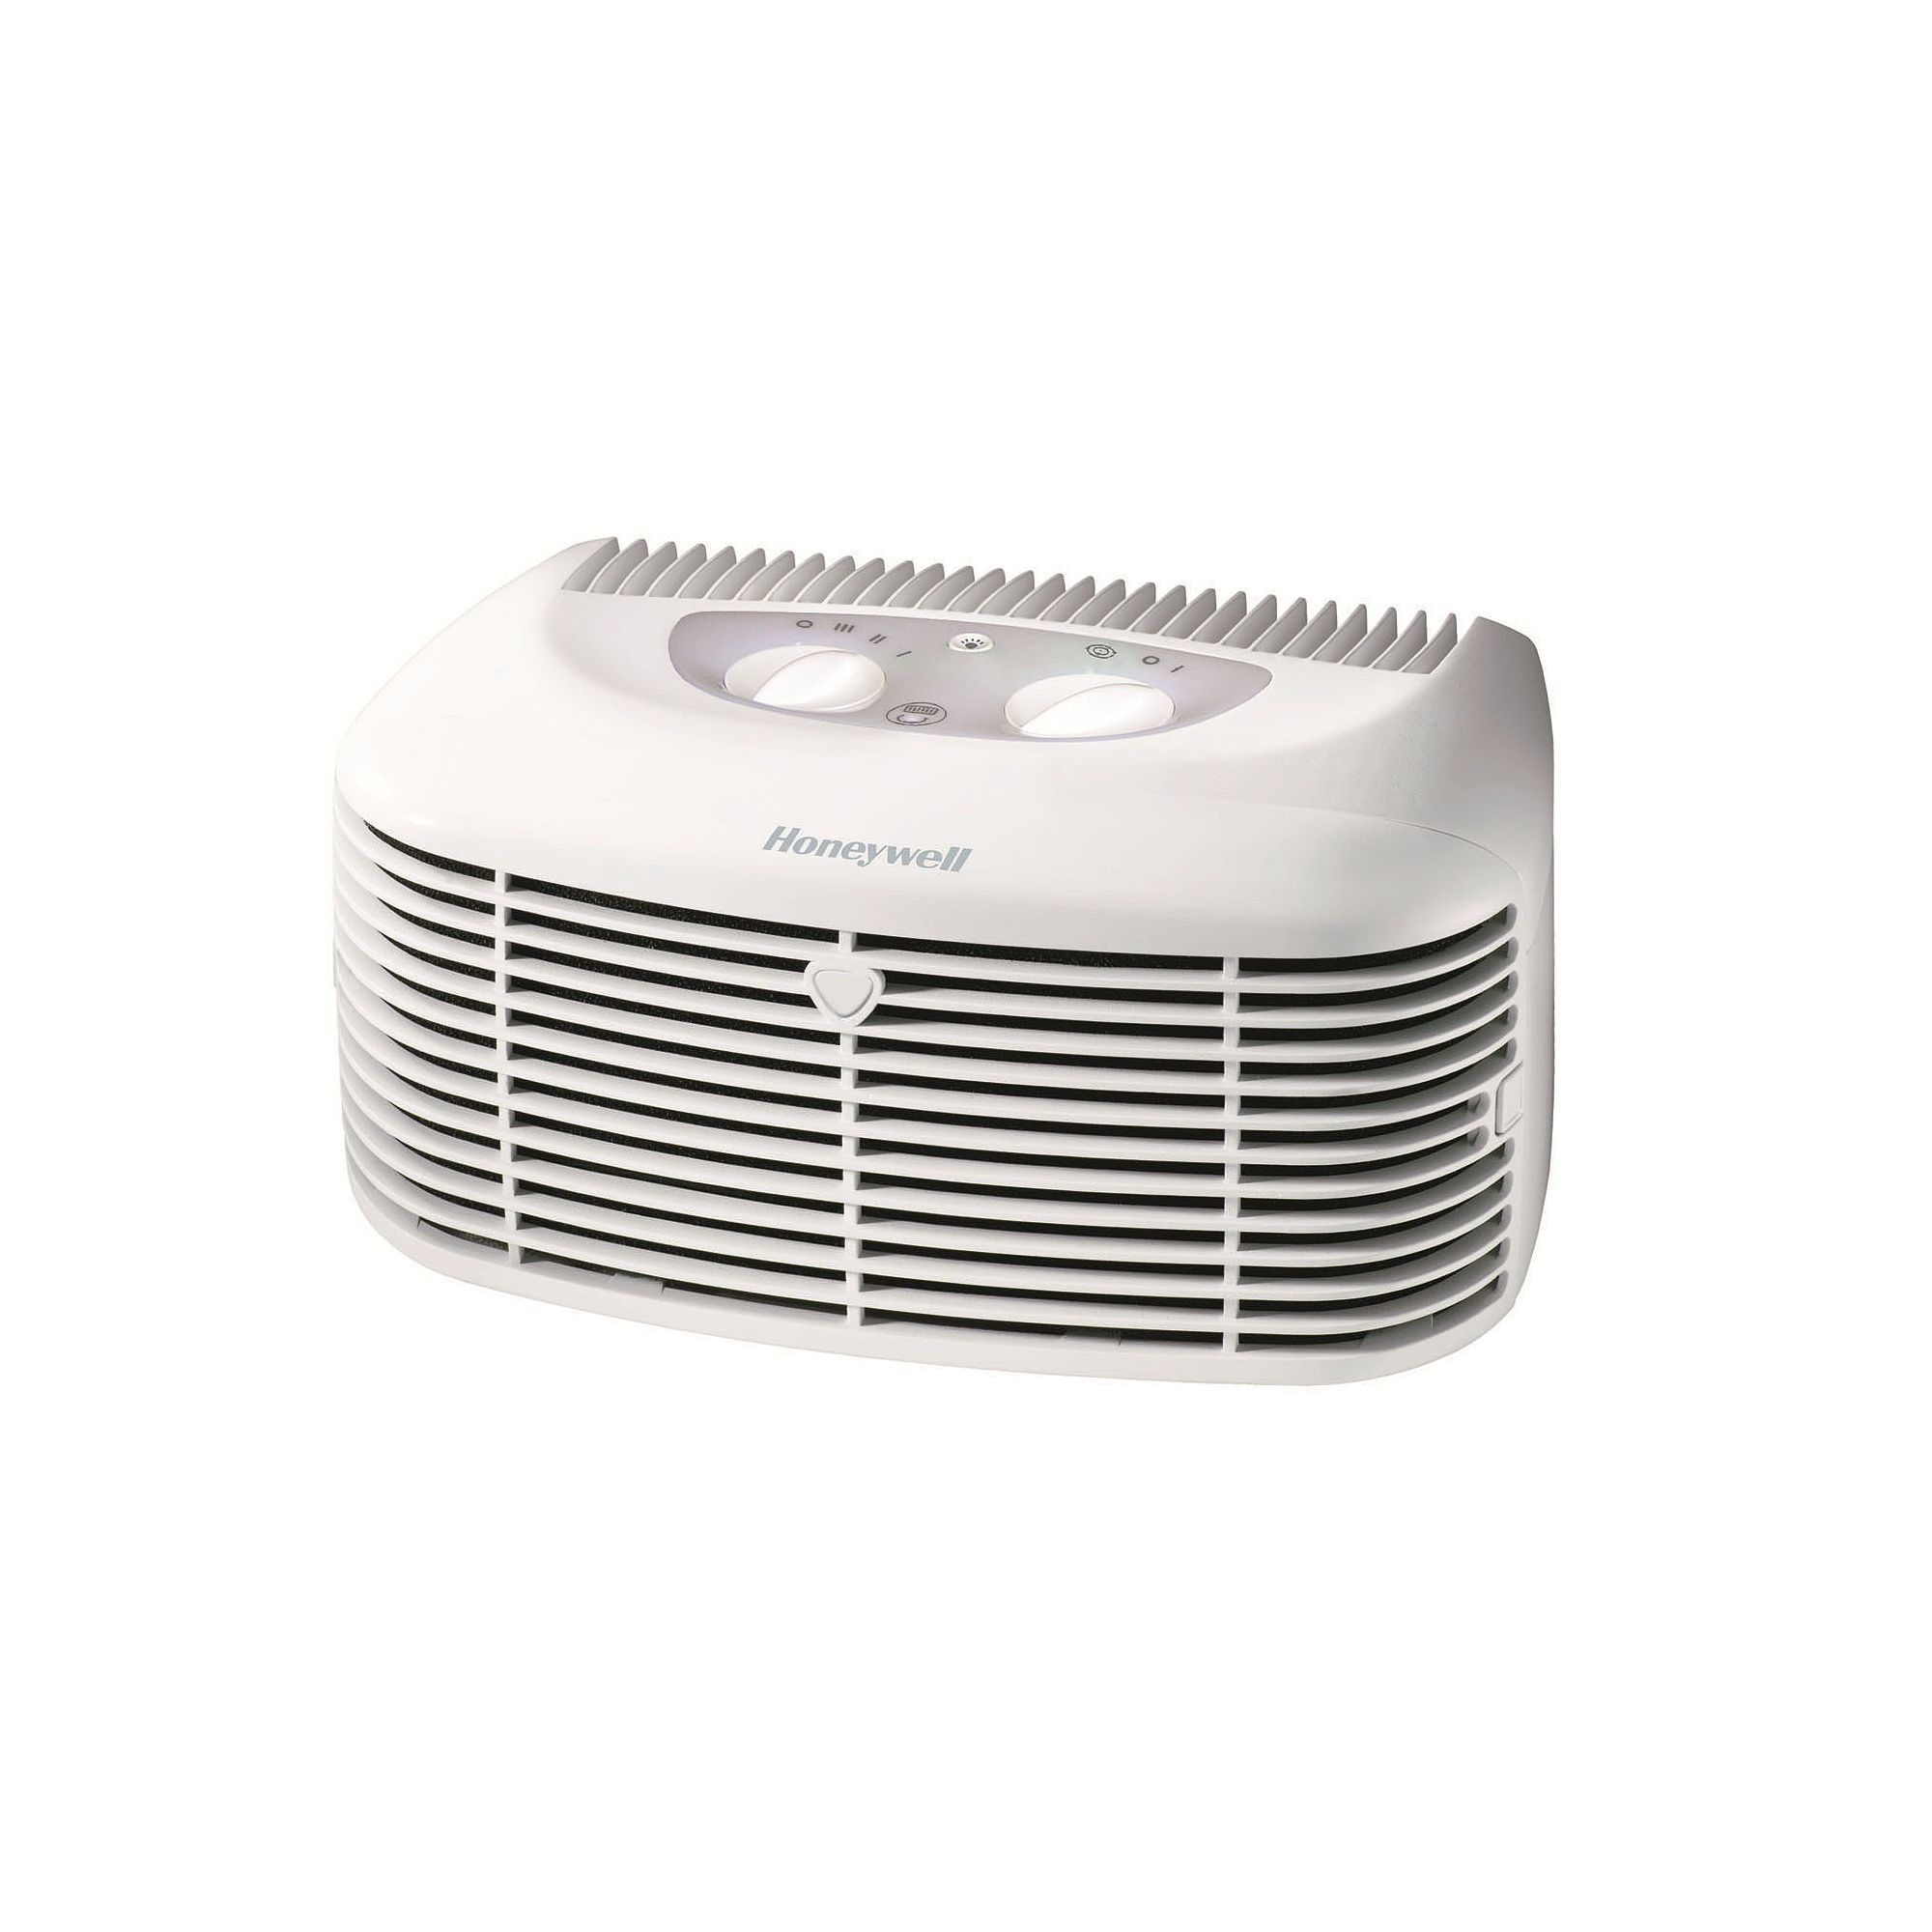 Honeywell Air Purifier, White (With images) Honeywell